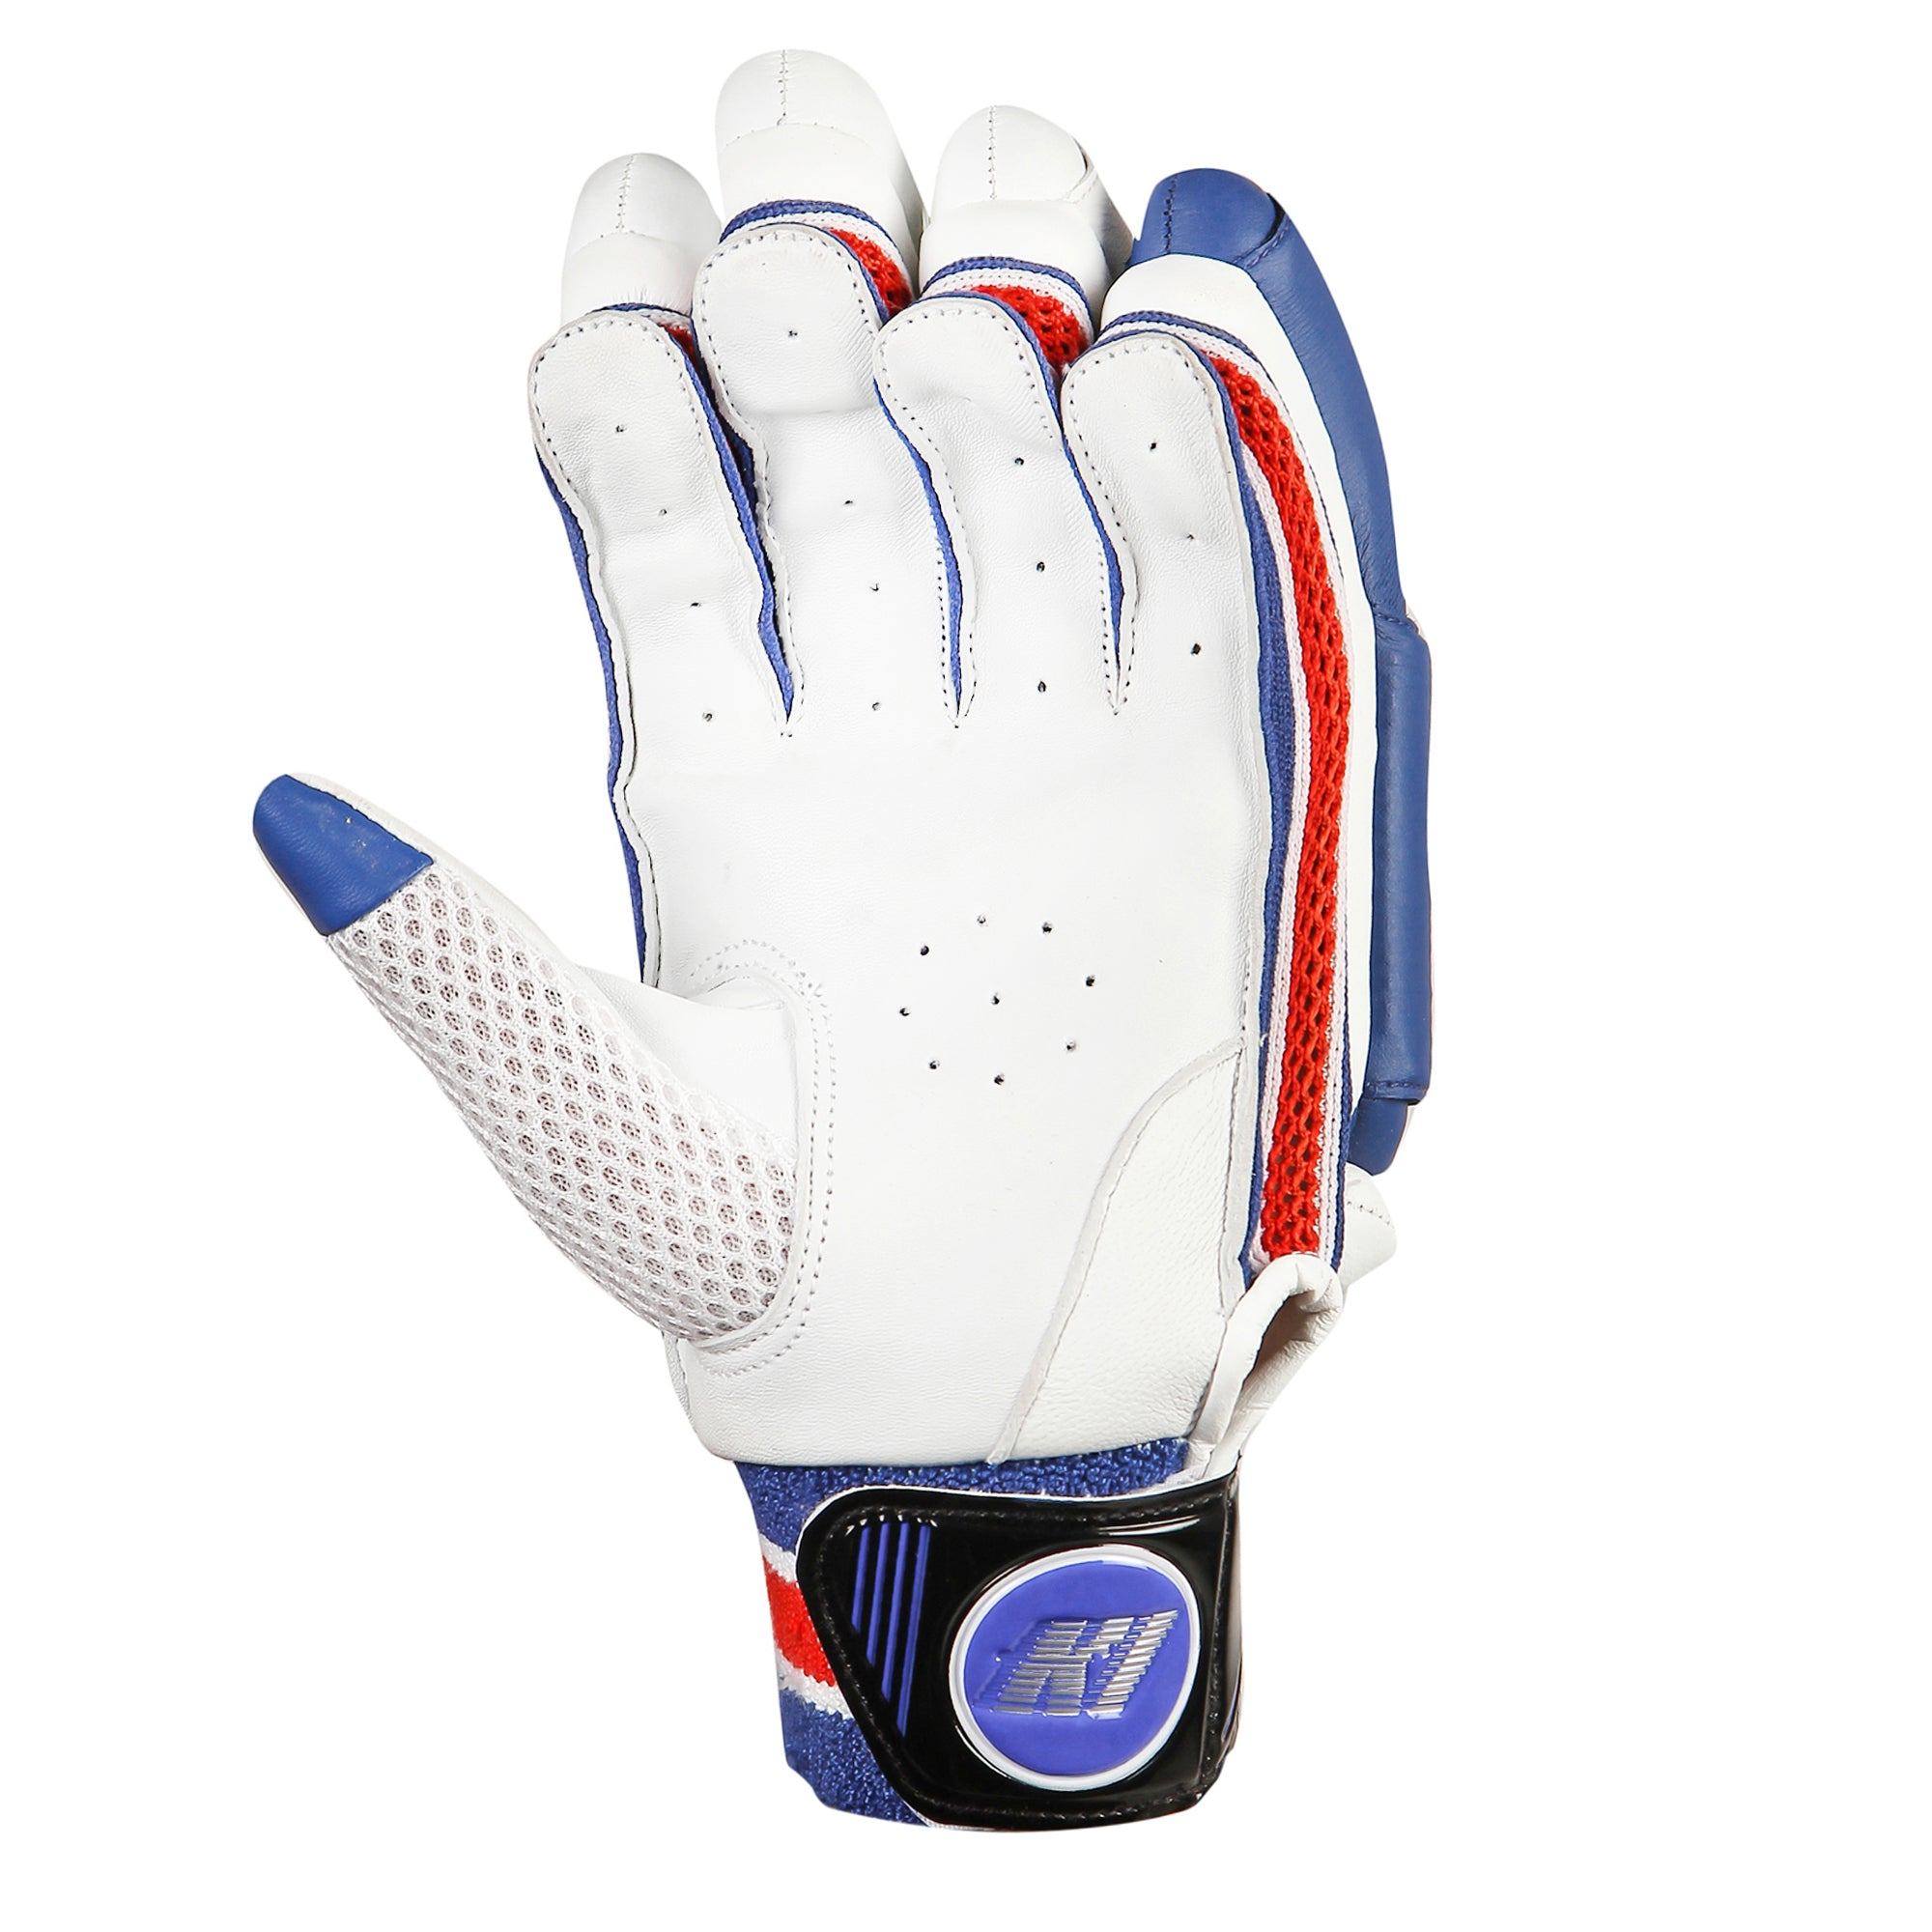 Spark - Batting Gloves